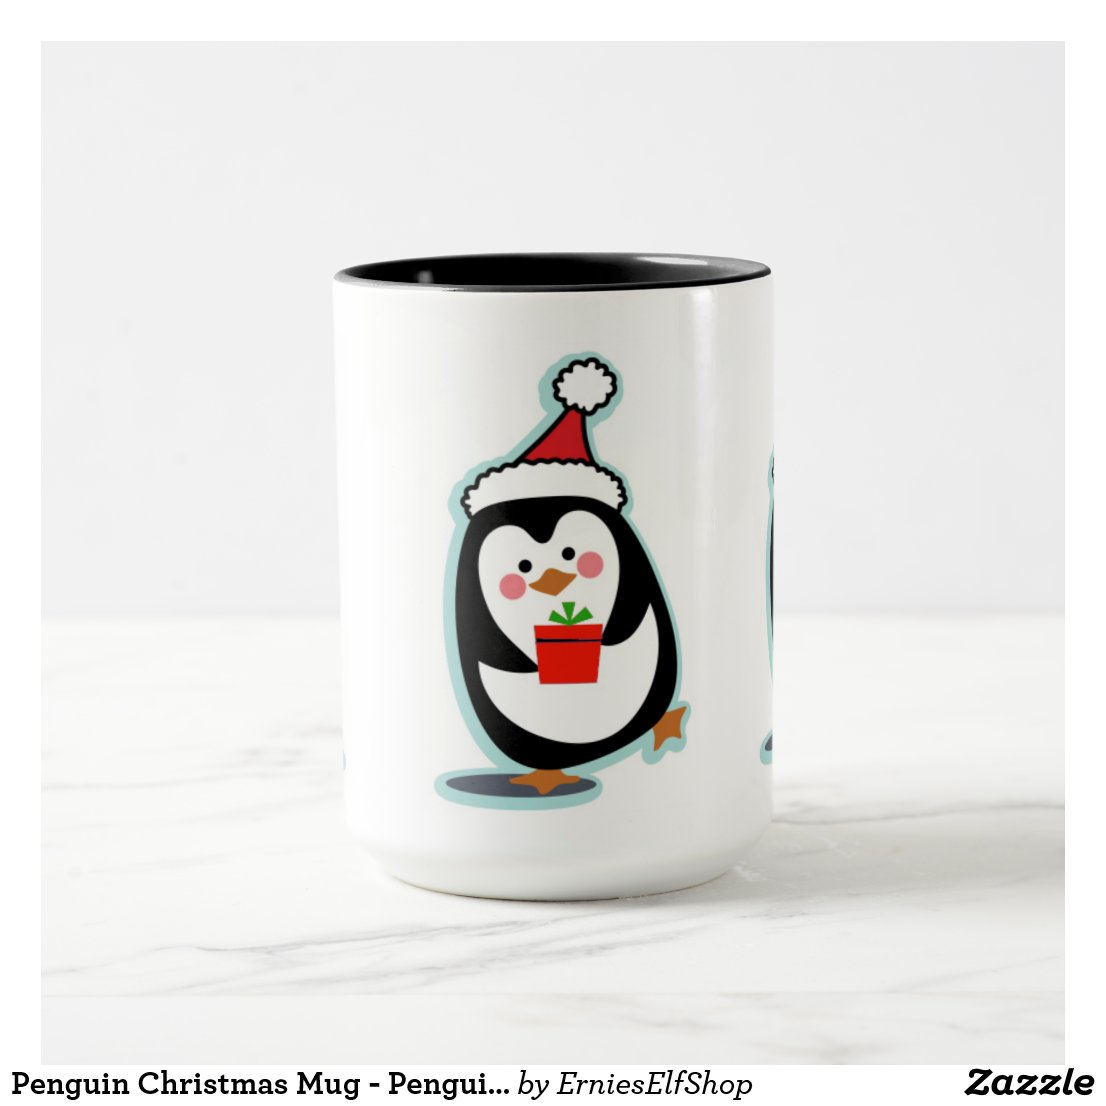 Penguin Christmas Mug - Penguins